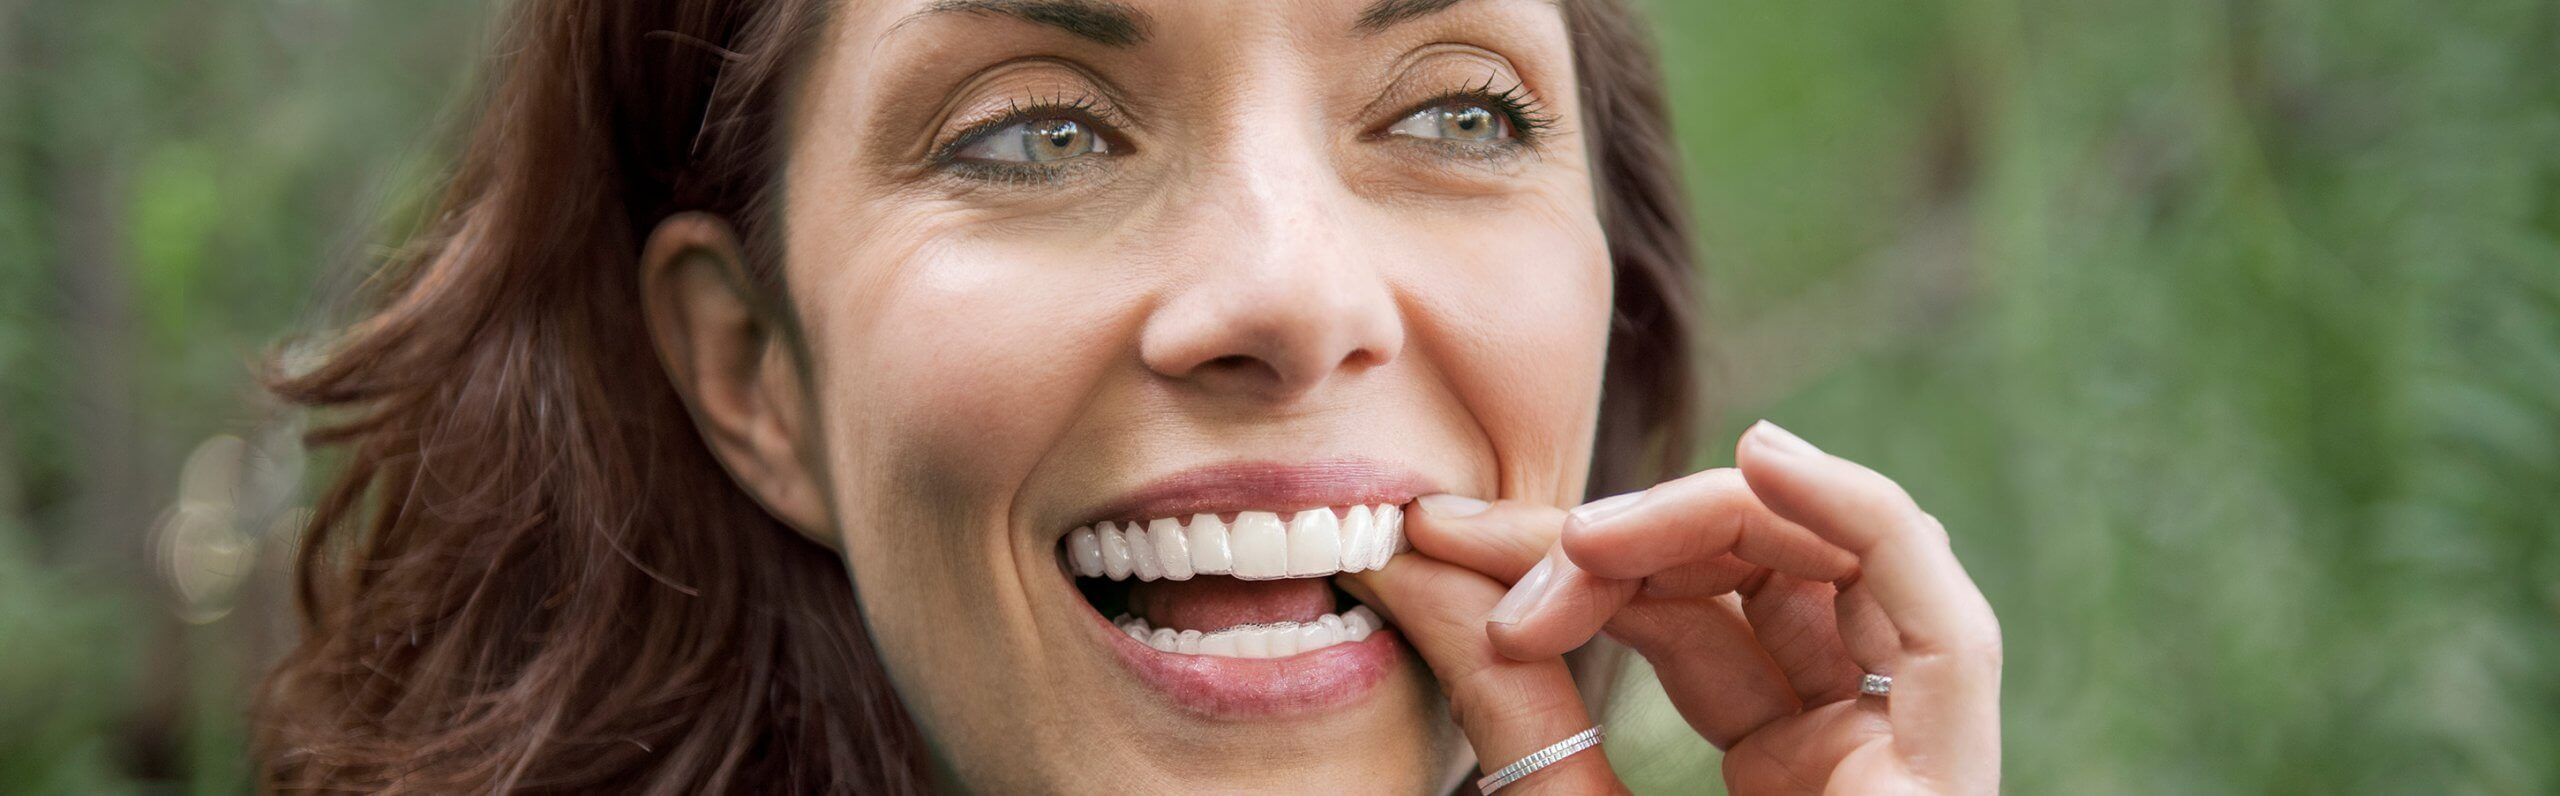 Invisalign Nottingham - Clear Braces | Sherwood Dental Care